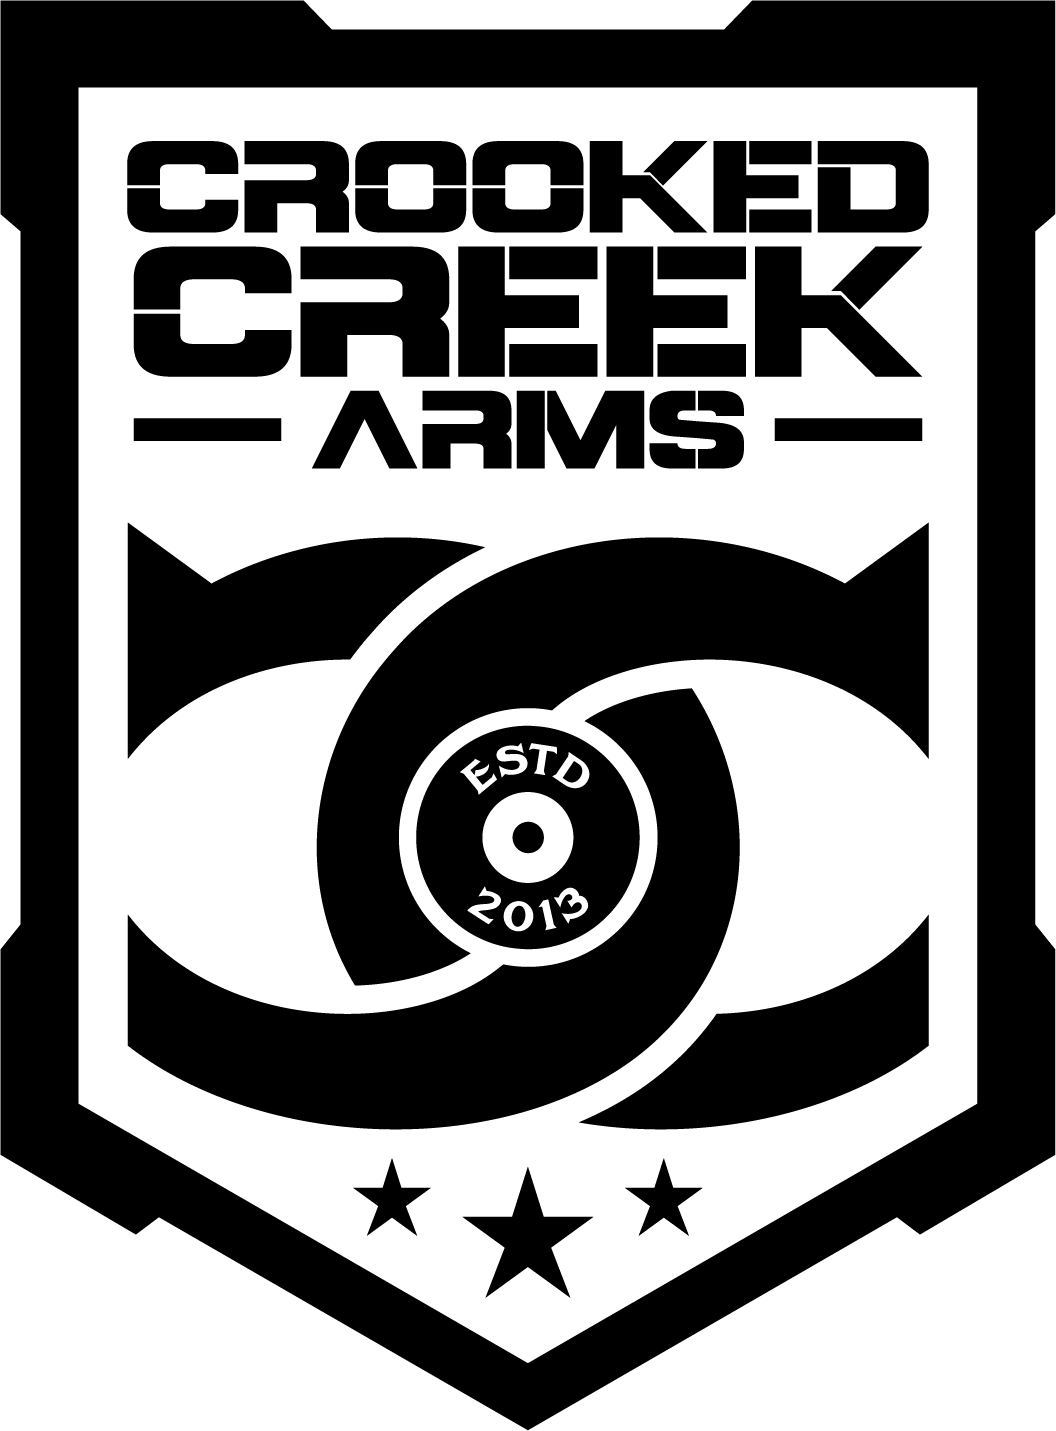 Sportsman Logo for Crooked Creek Arms